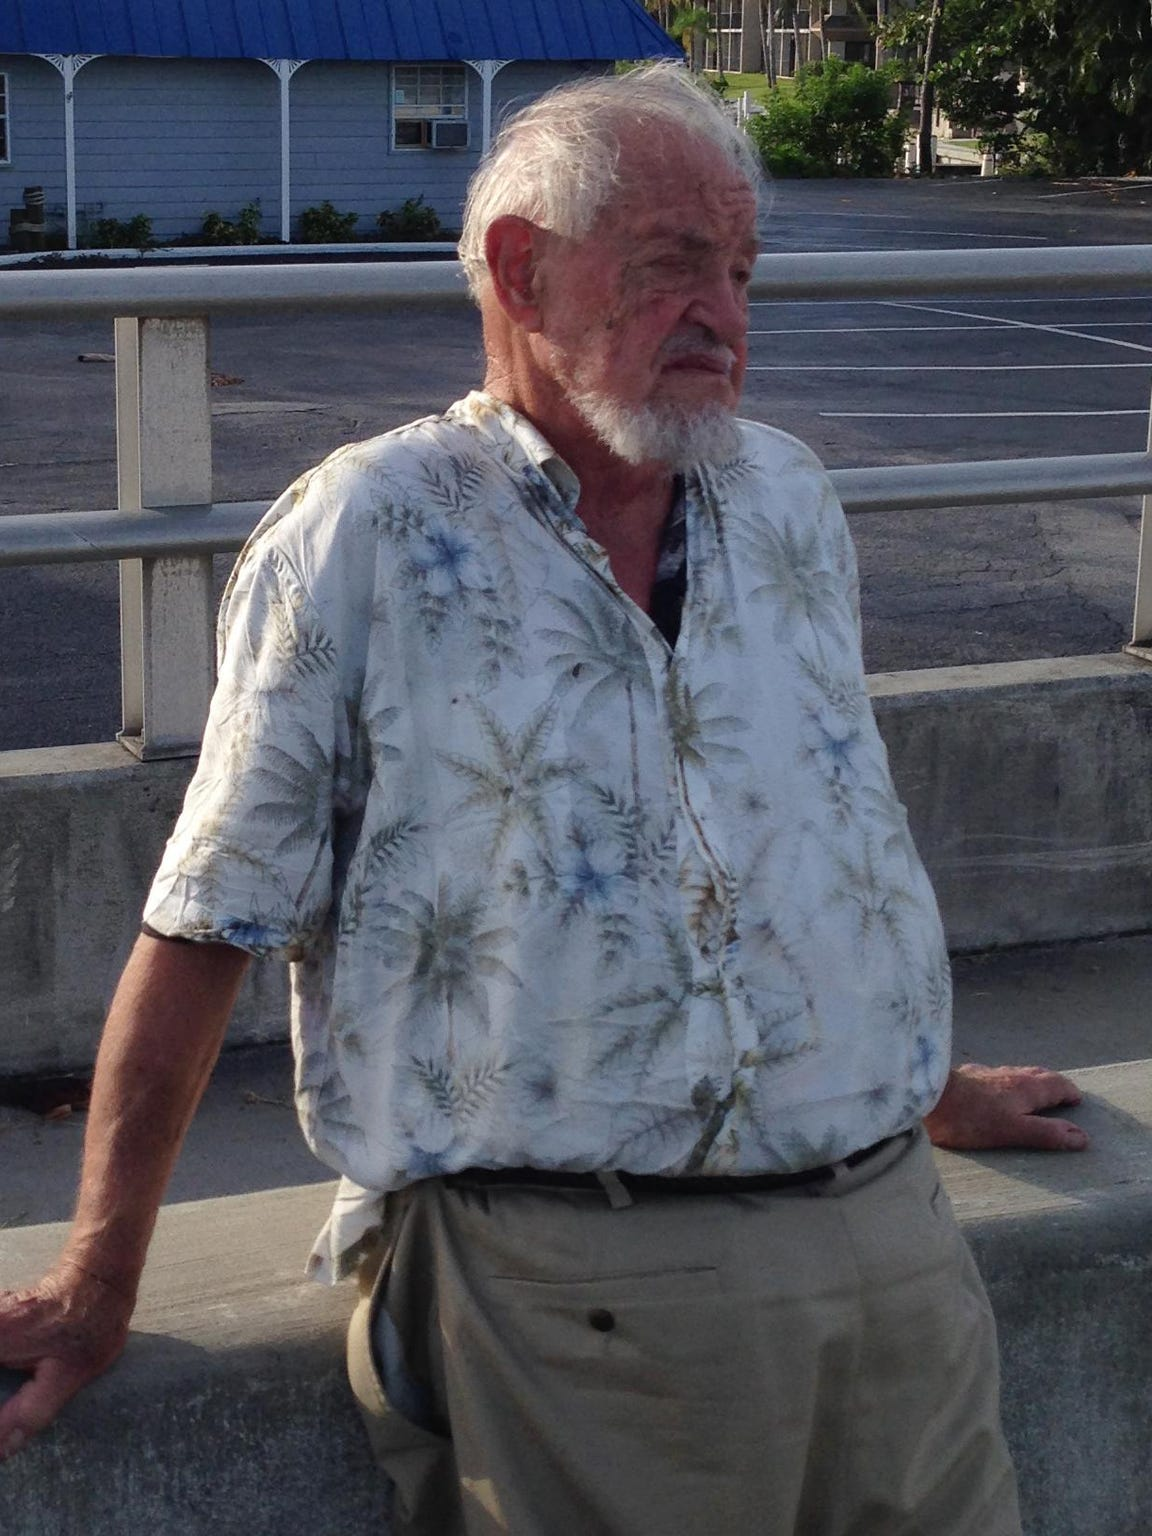 Lee Luenser, the driver, shortly after the July 2014